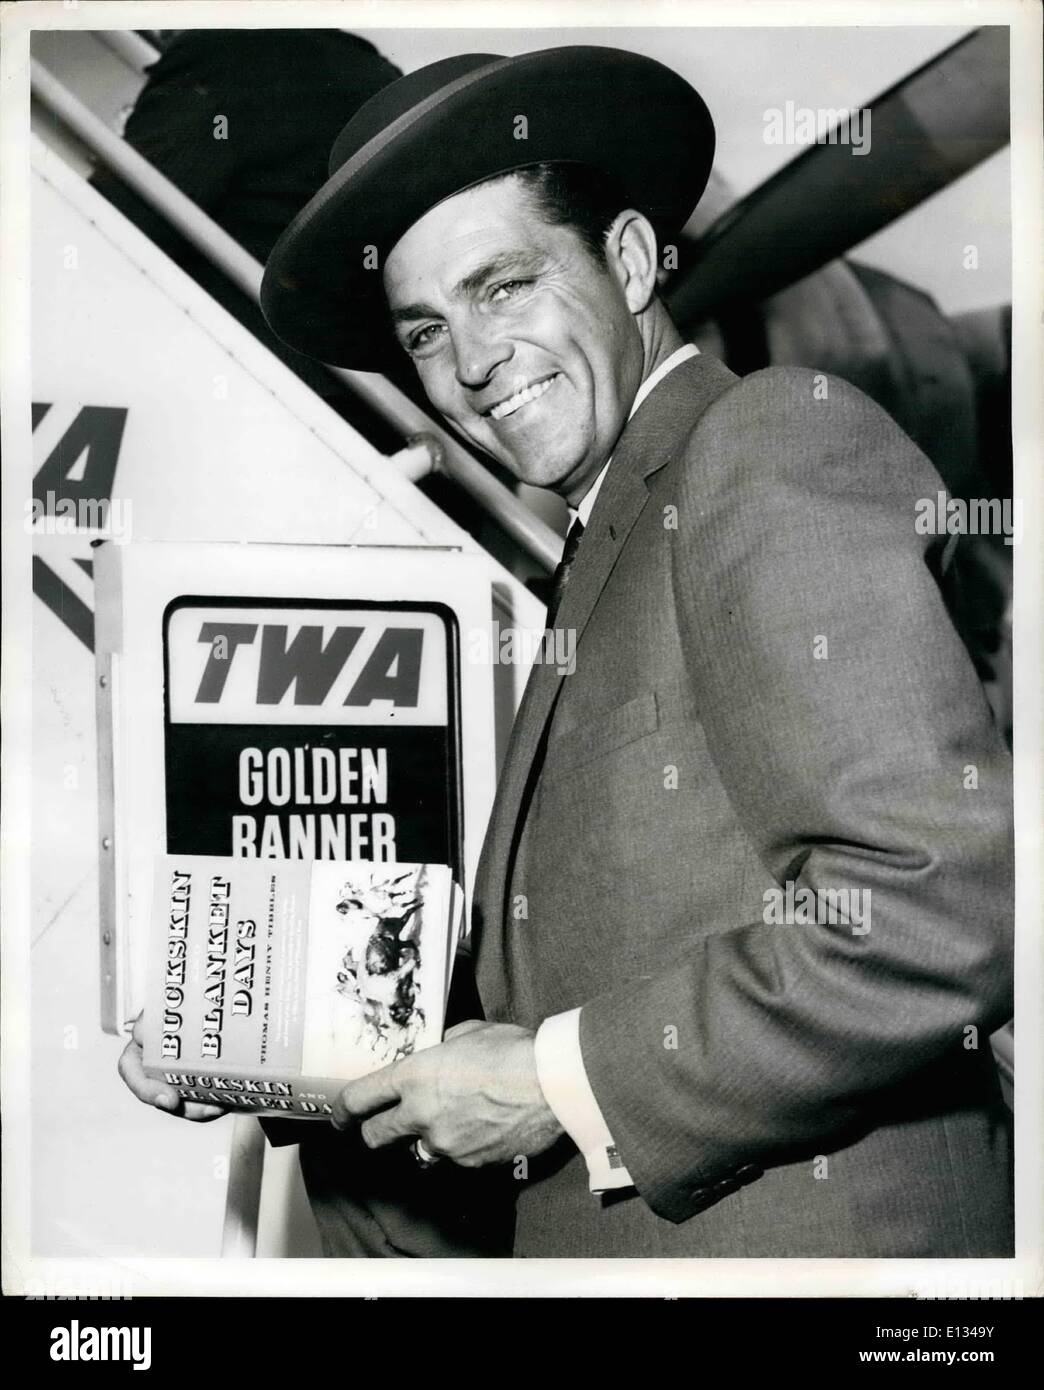 Feb. 28, 2012 - Idewild Airport, N.Y., Sept 14 - Dale Robertson, Star Of The TV Series ''Tales Of Wells Fargo'', Stock Photo